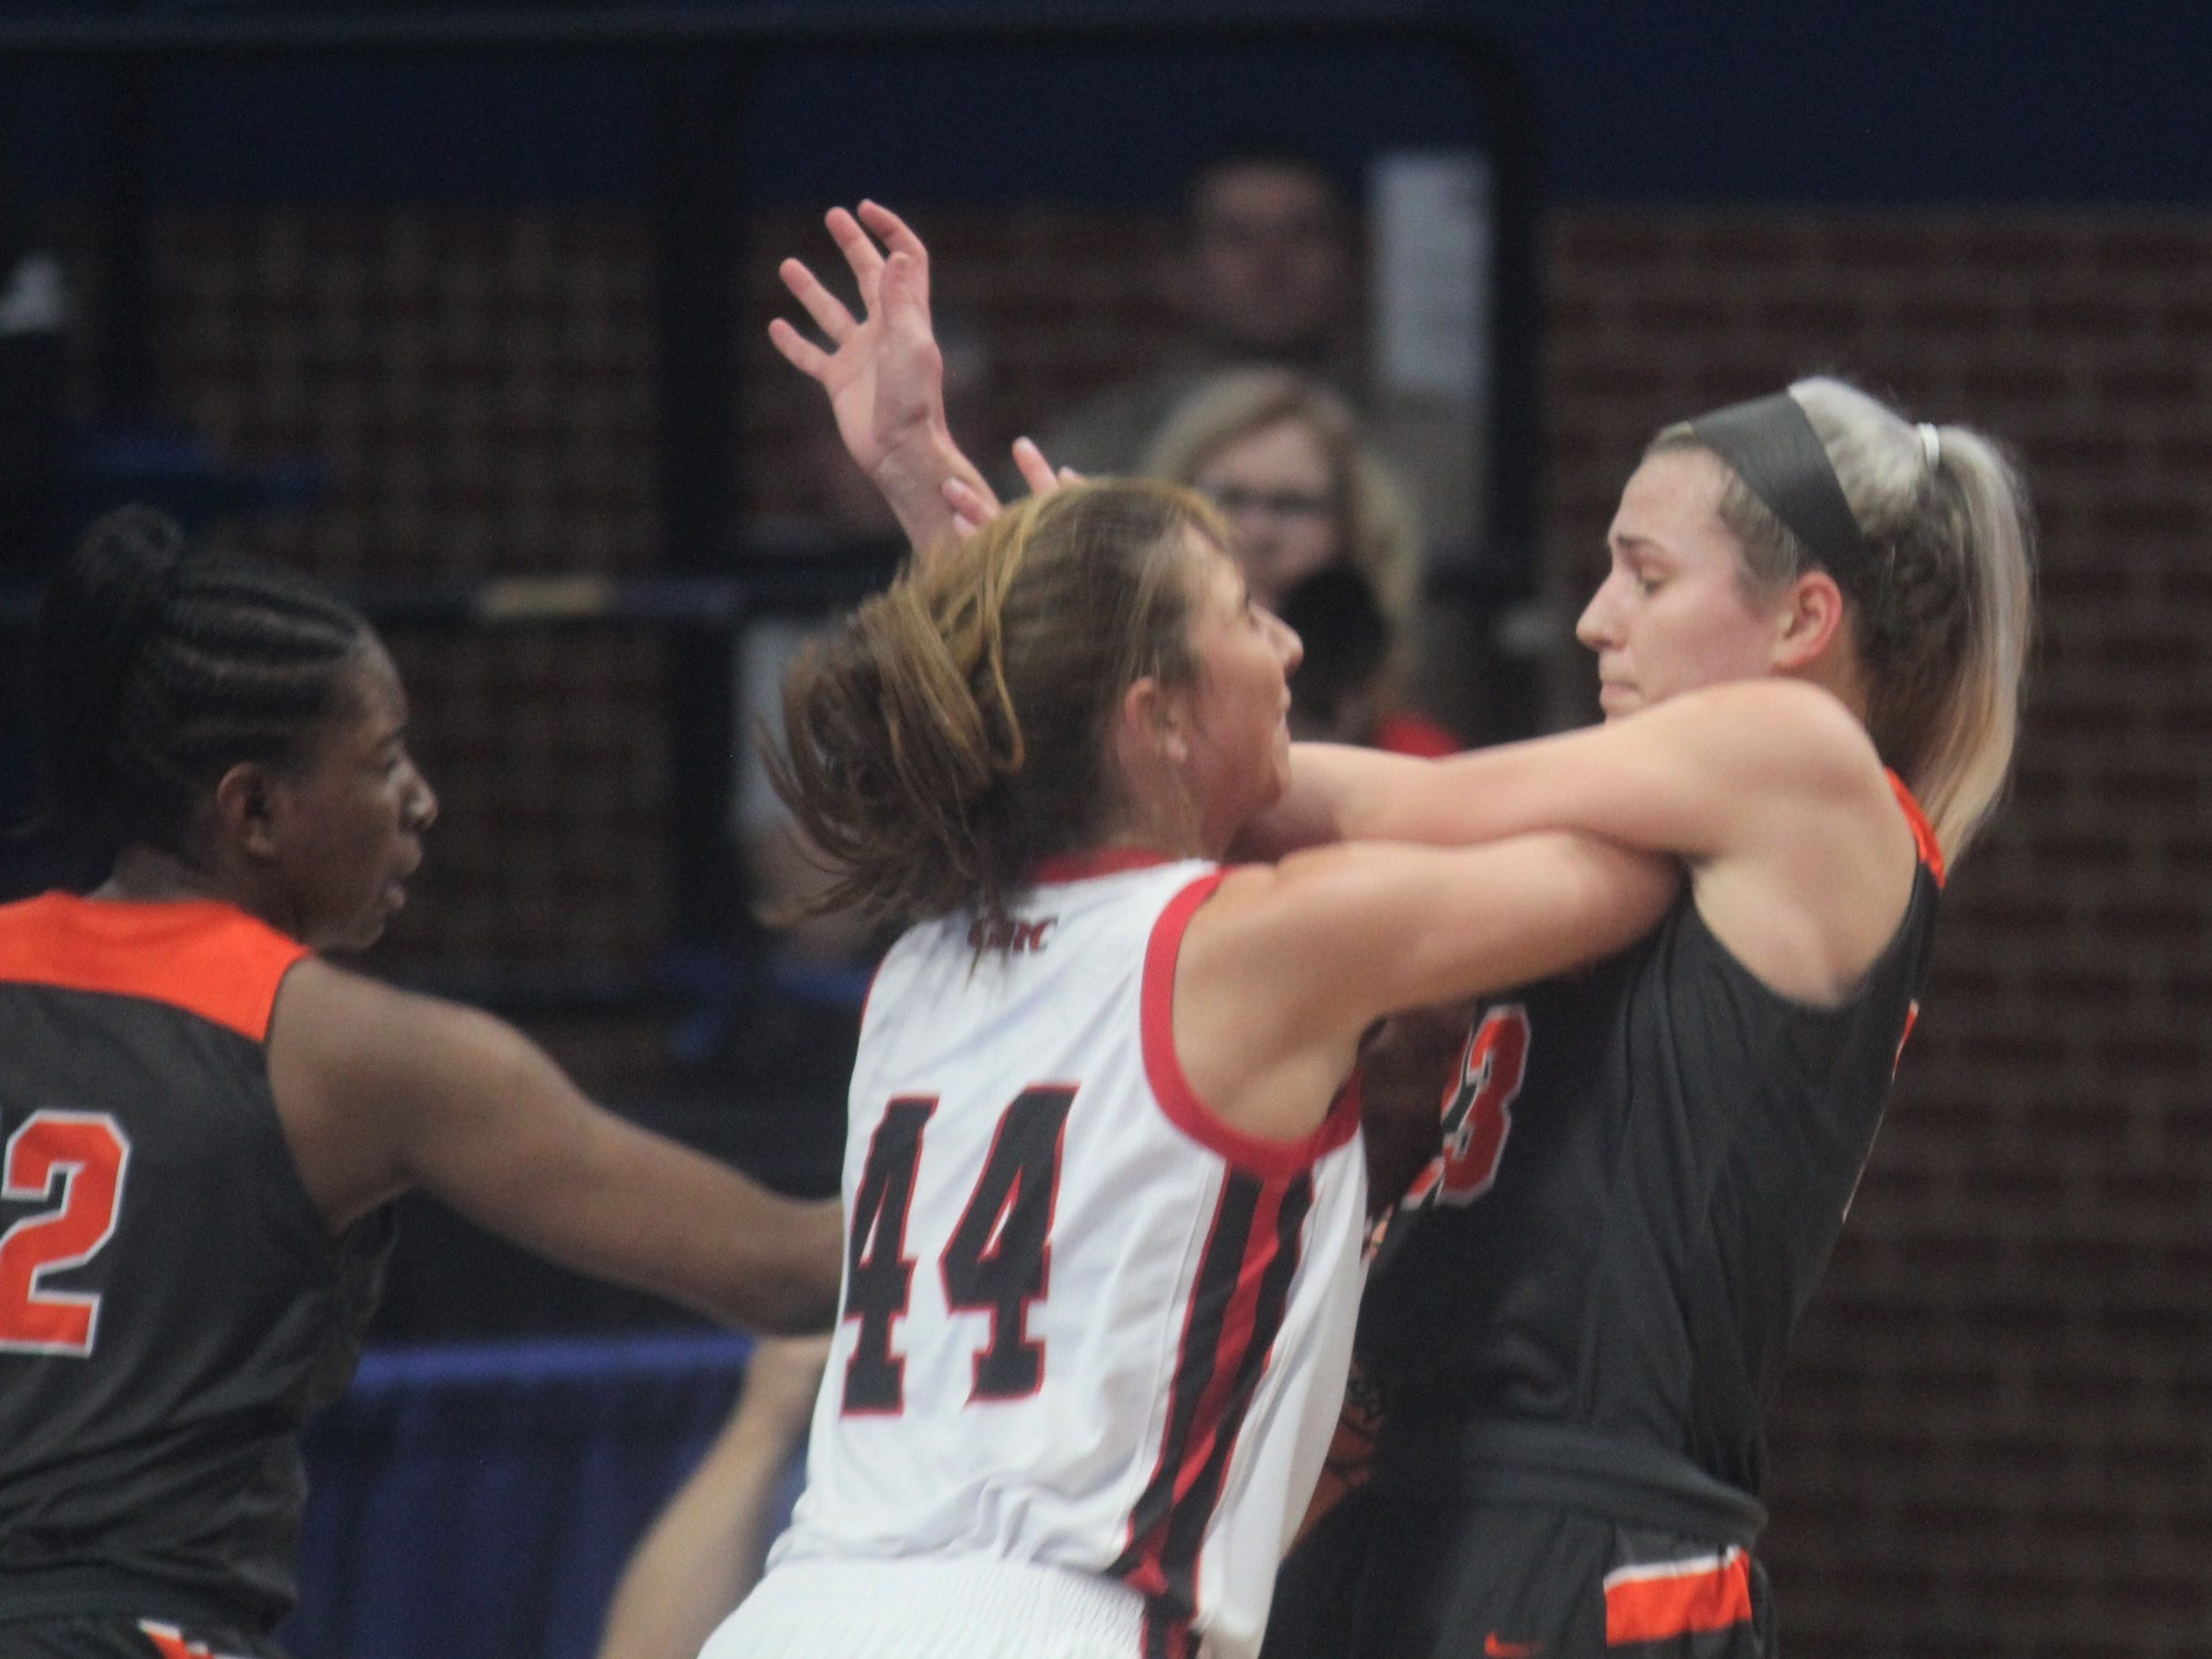 Ryle junior Maddie Scherr and GRC's Hayley Harrison get tangled up as Ryle defeated George Rogers Clark 64-51 in the state quarterfinals of the KHSAA Sweet 16 girls basketball tournament March 15, 2019 at Rupp Arena, Lexington KY.